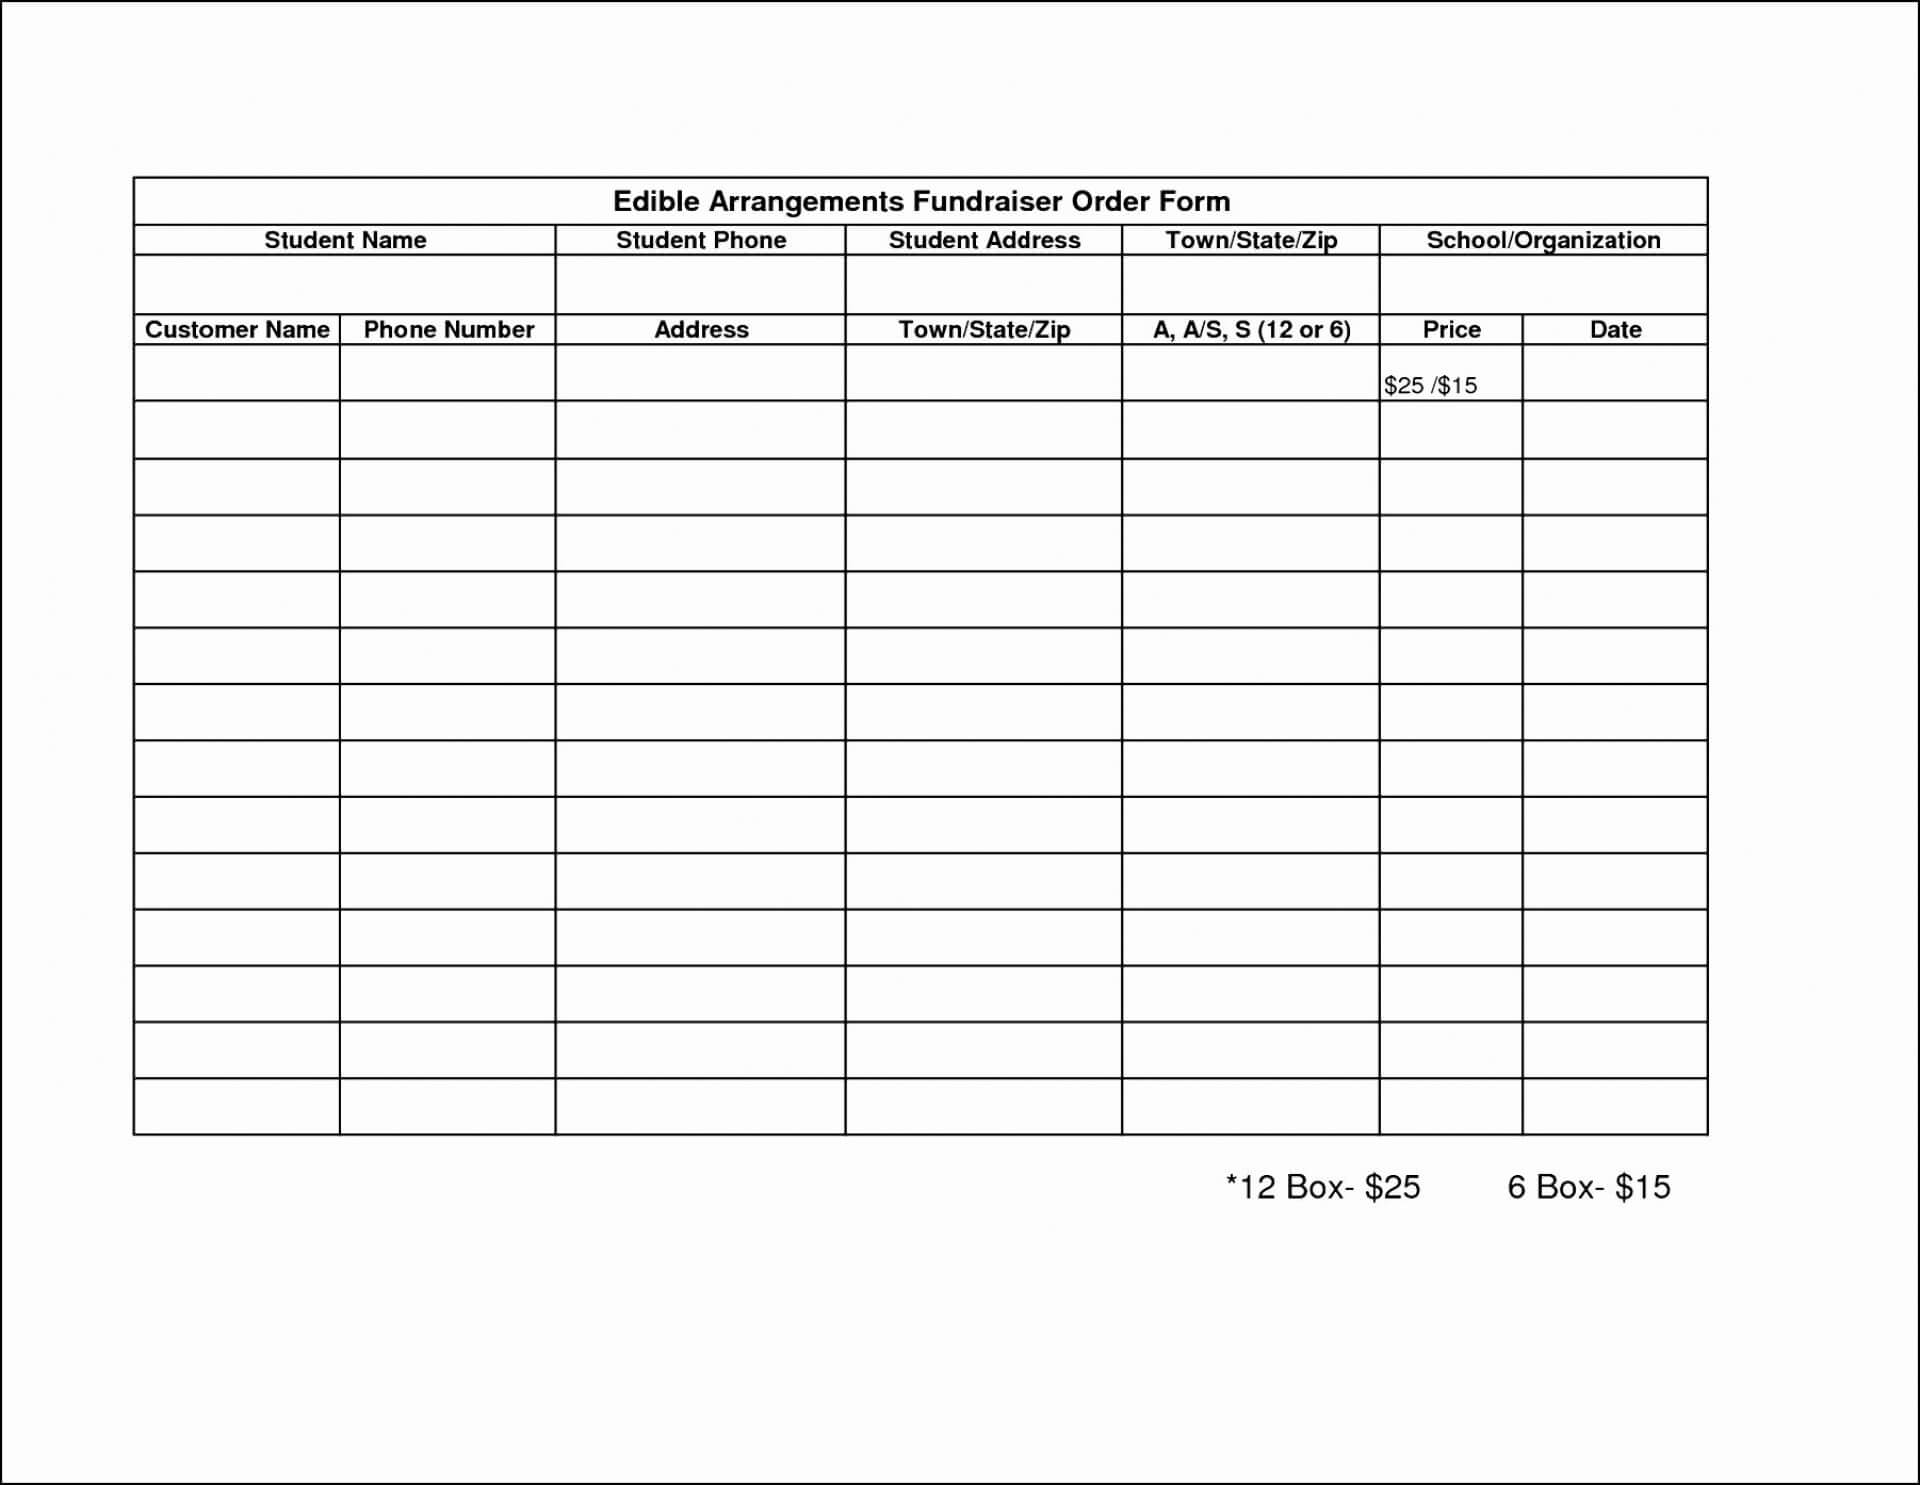 001 Template Ideas Blank Fundraiser Order Form Formidable Regarding Blank Fundraiser Order Form Template